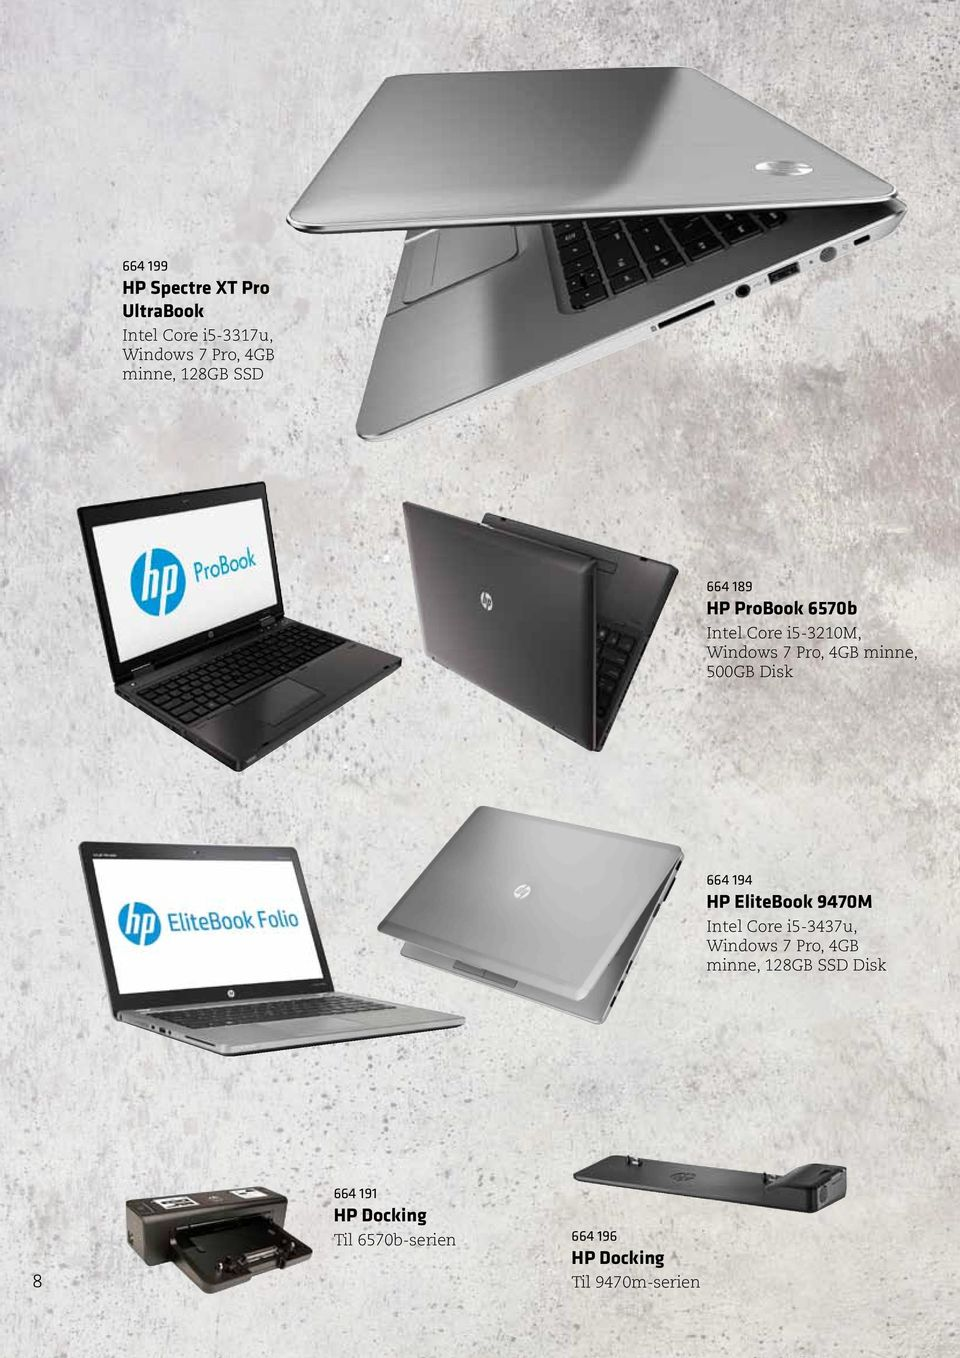 500GB Disk 664 194 HP EliteBook 9470M Intel Core i5-3437u, Windows 7 Pro, 4GB minne,